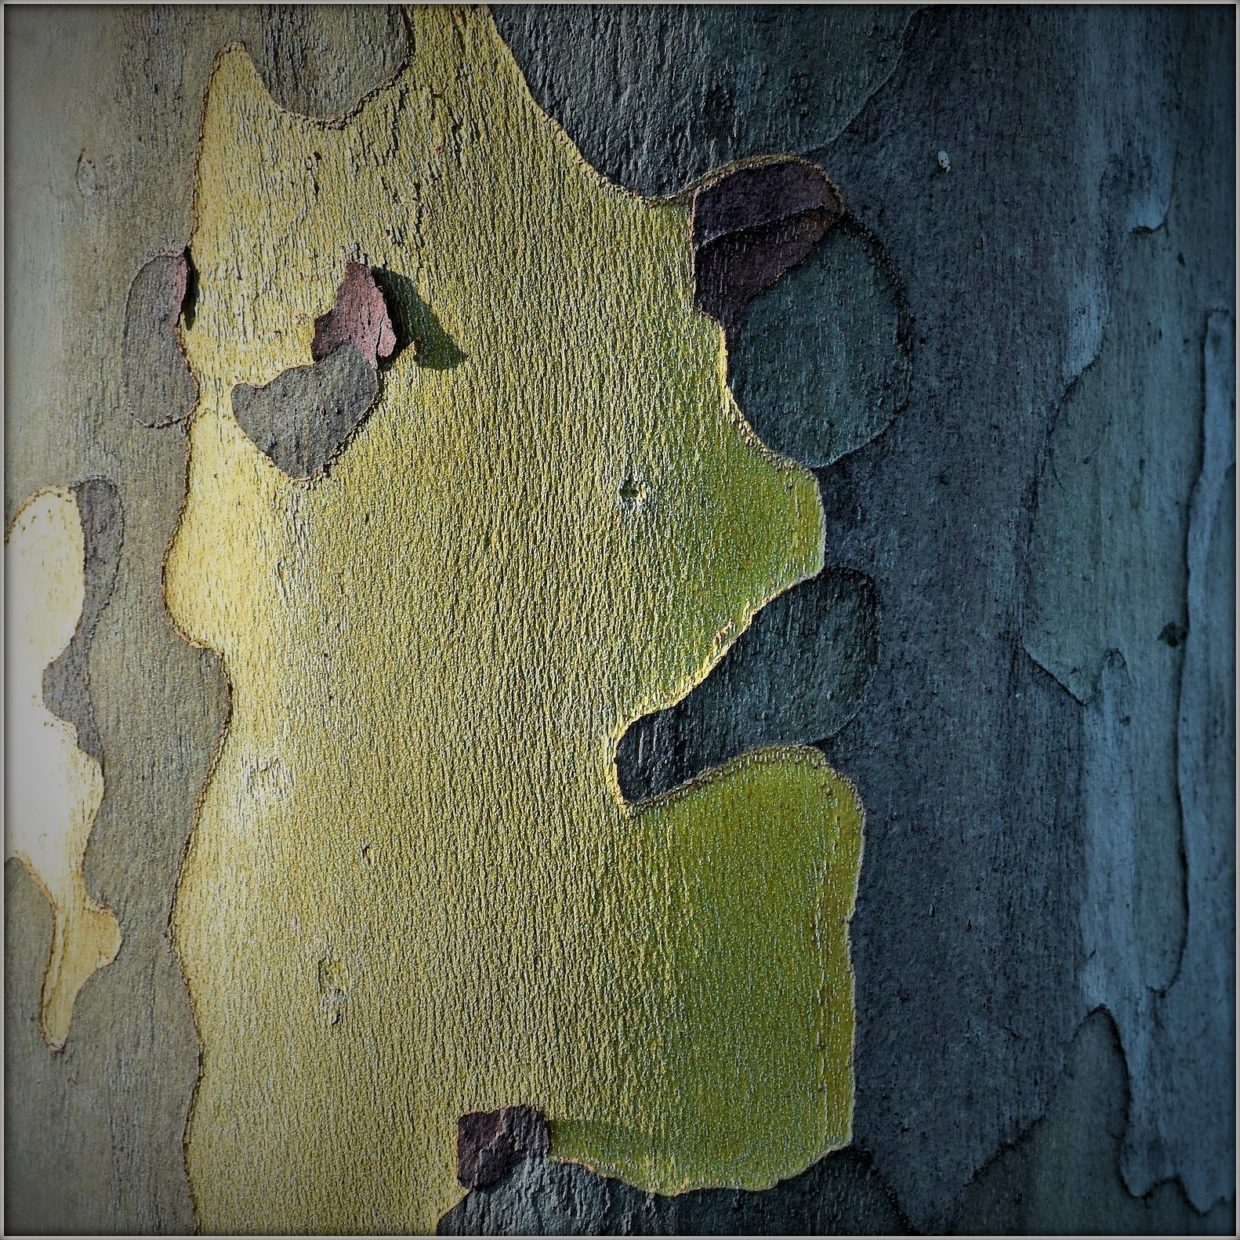 woman face with a beary tree bark